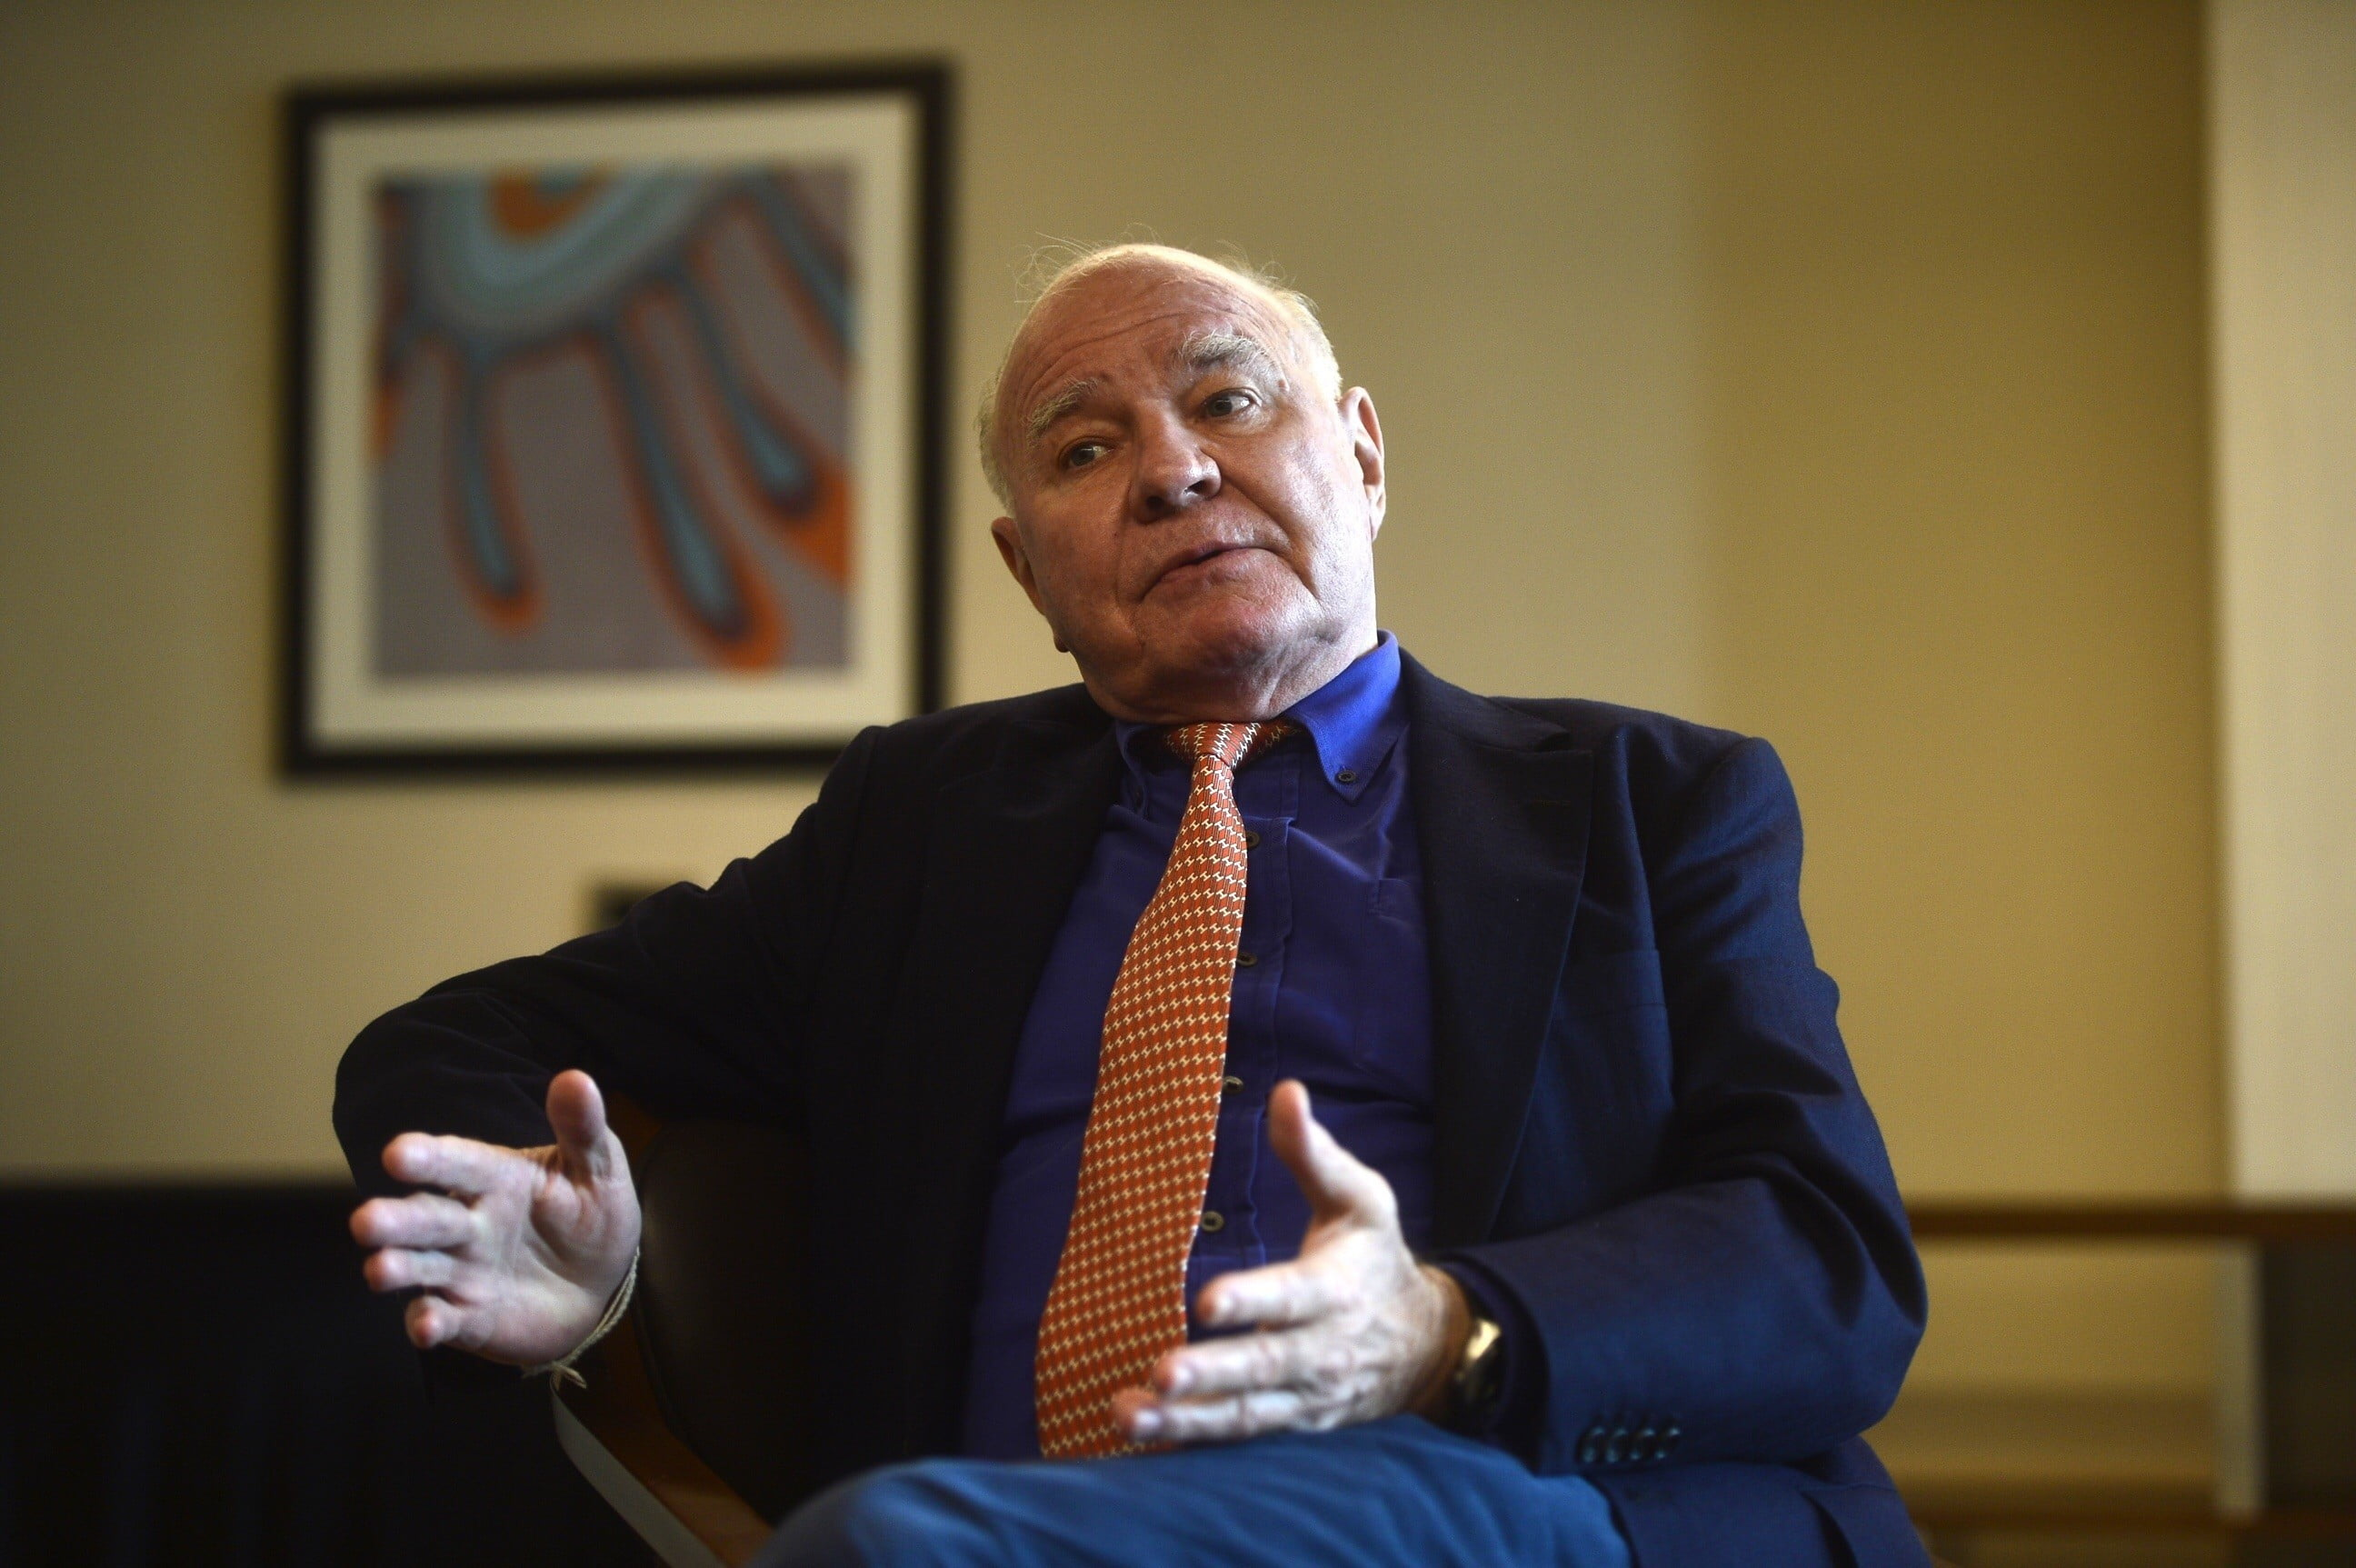 Stock market expert Marc Faber makes his first investment in BTC